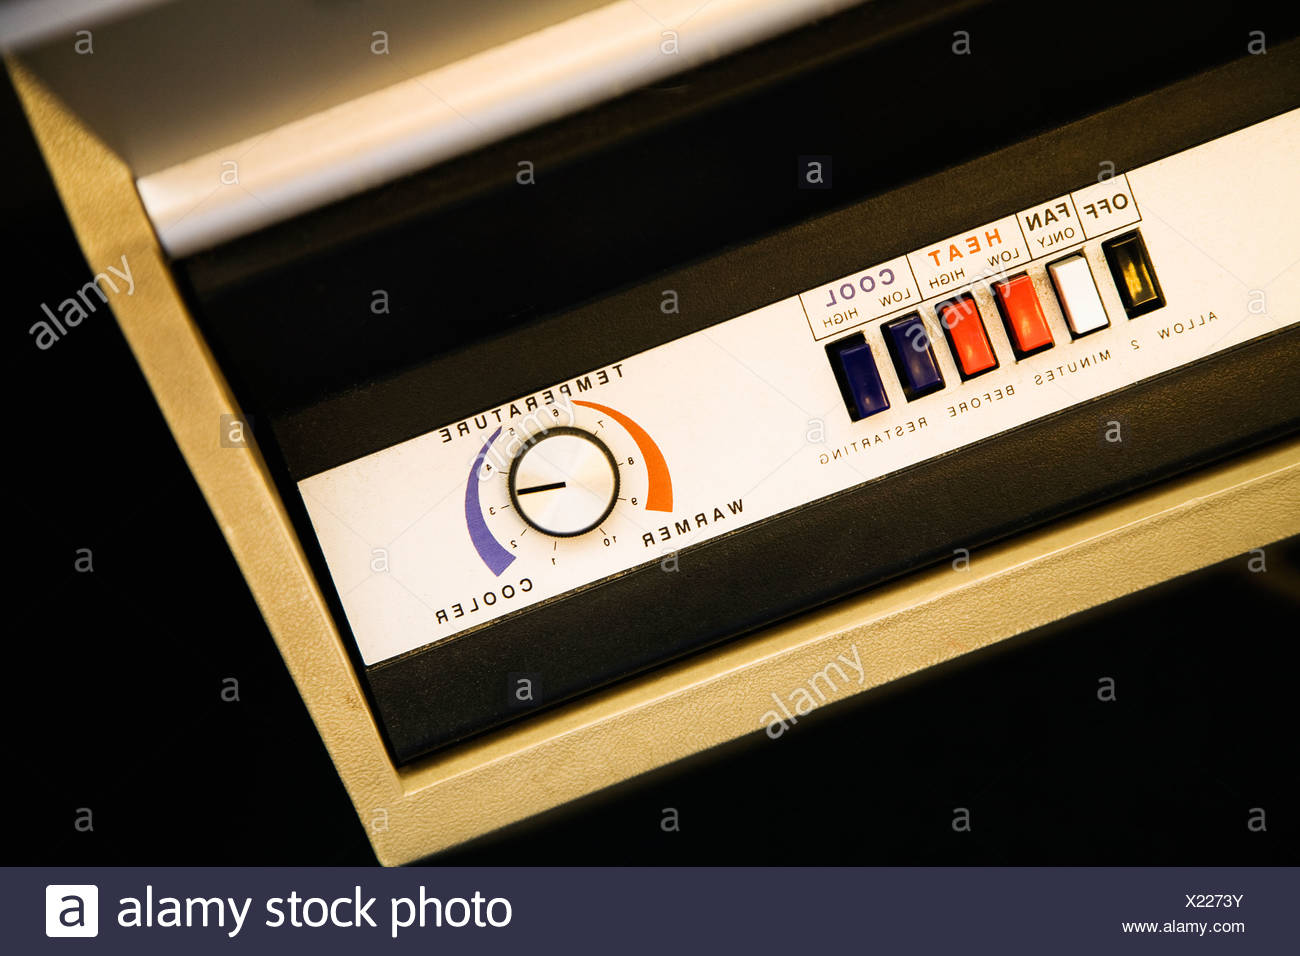 Retro Control Panel Stock Photos Images Old Style Air Conditioner Fuse Box Close Up Of Conditioning Unit Image